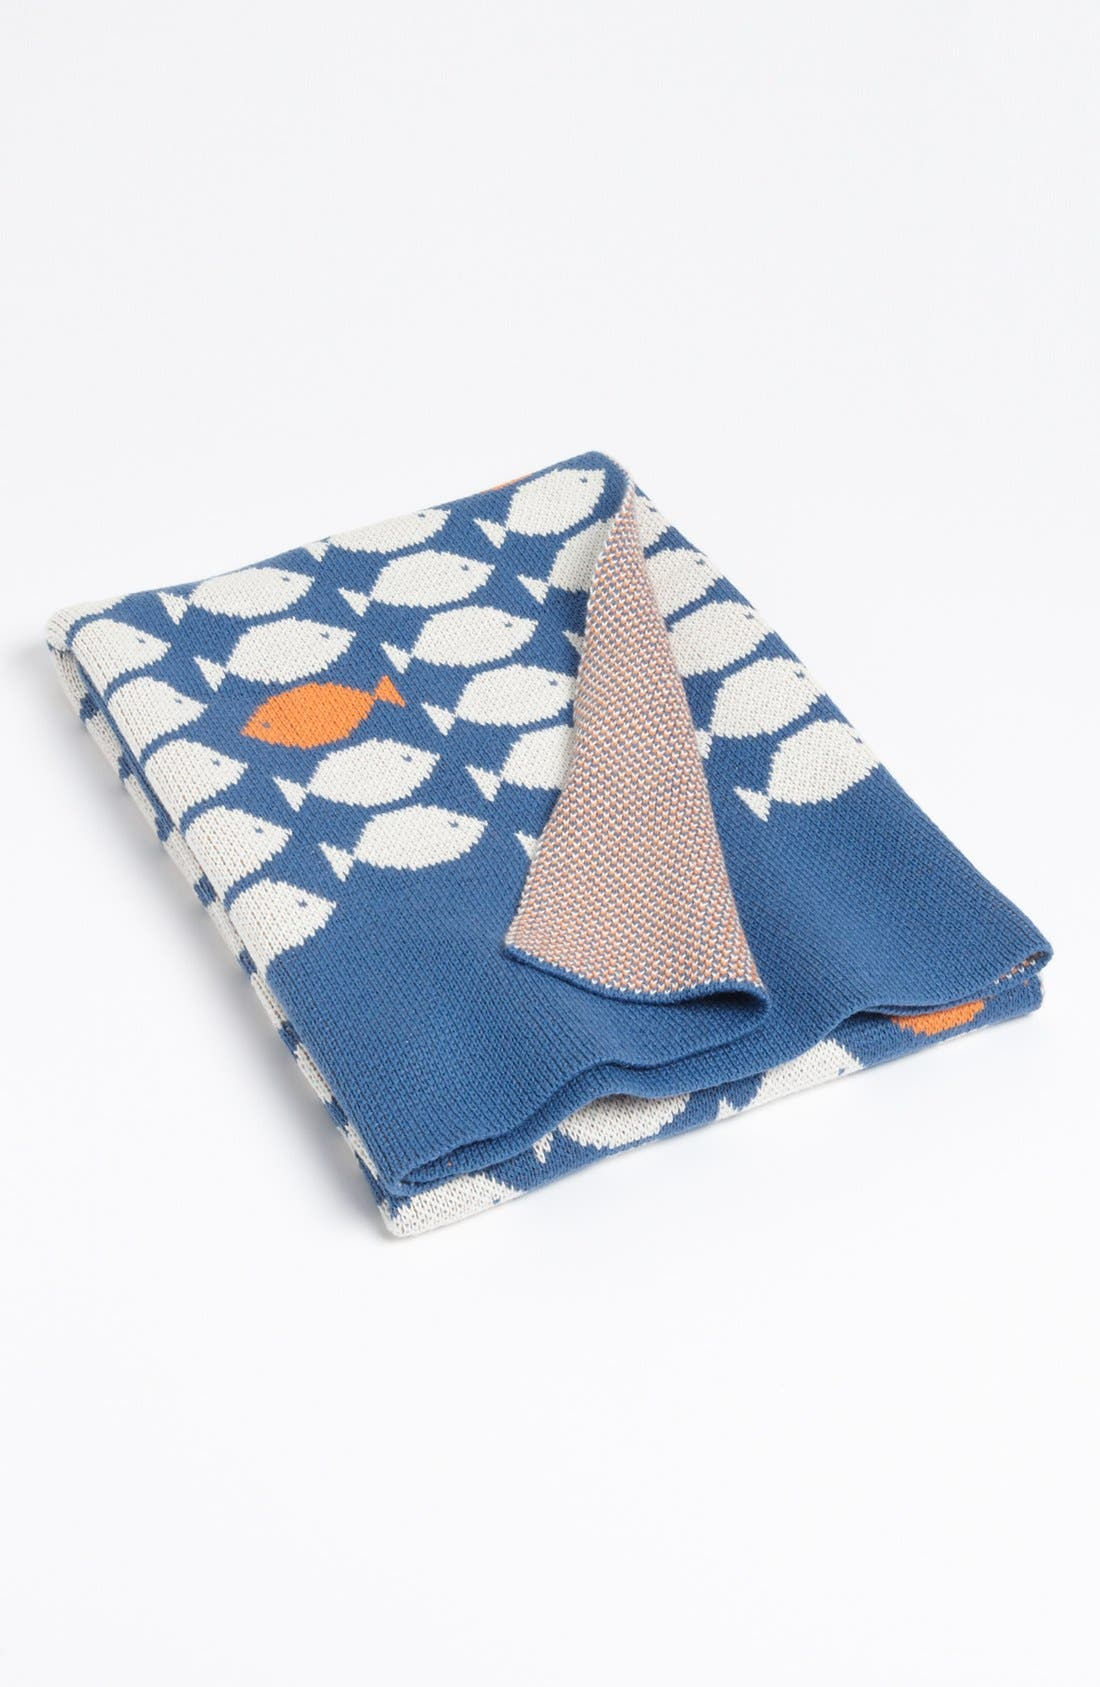 Alternate Image 1 Selected - Stem Baby 'Fashion' Organic Cotton Blanket